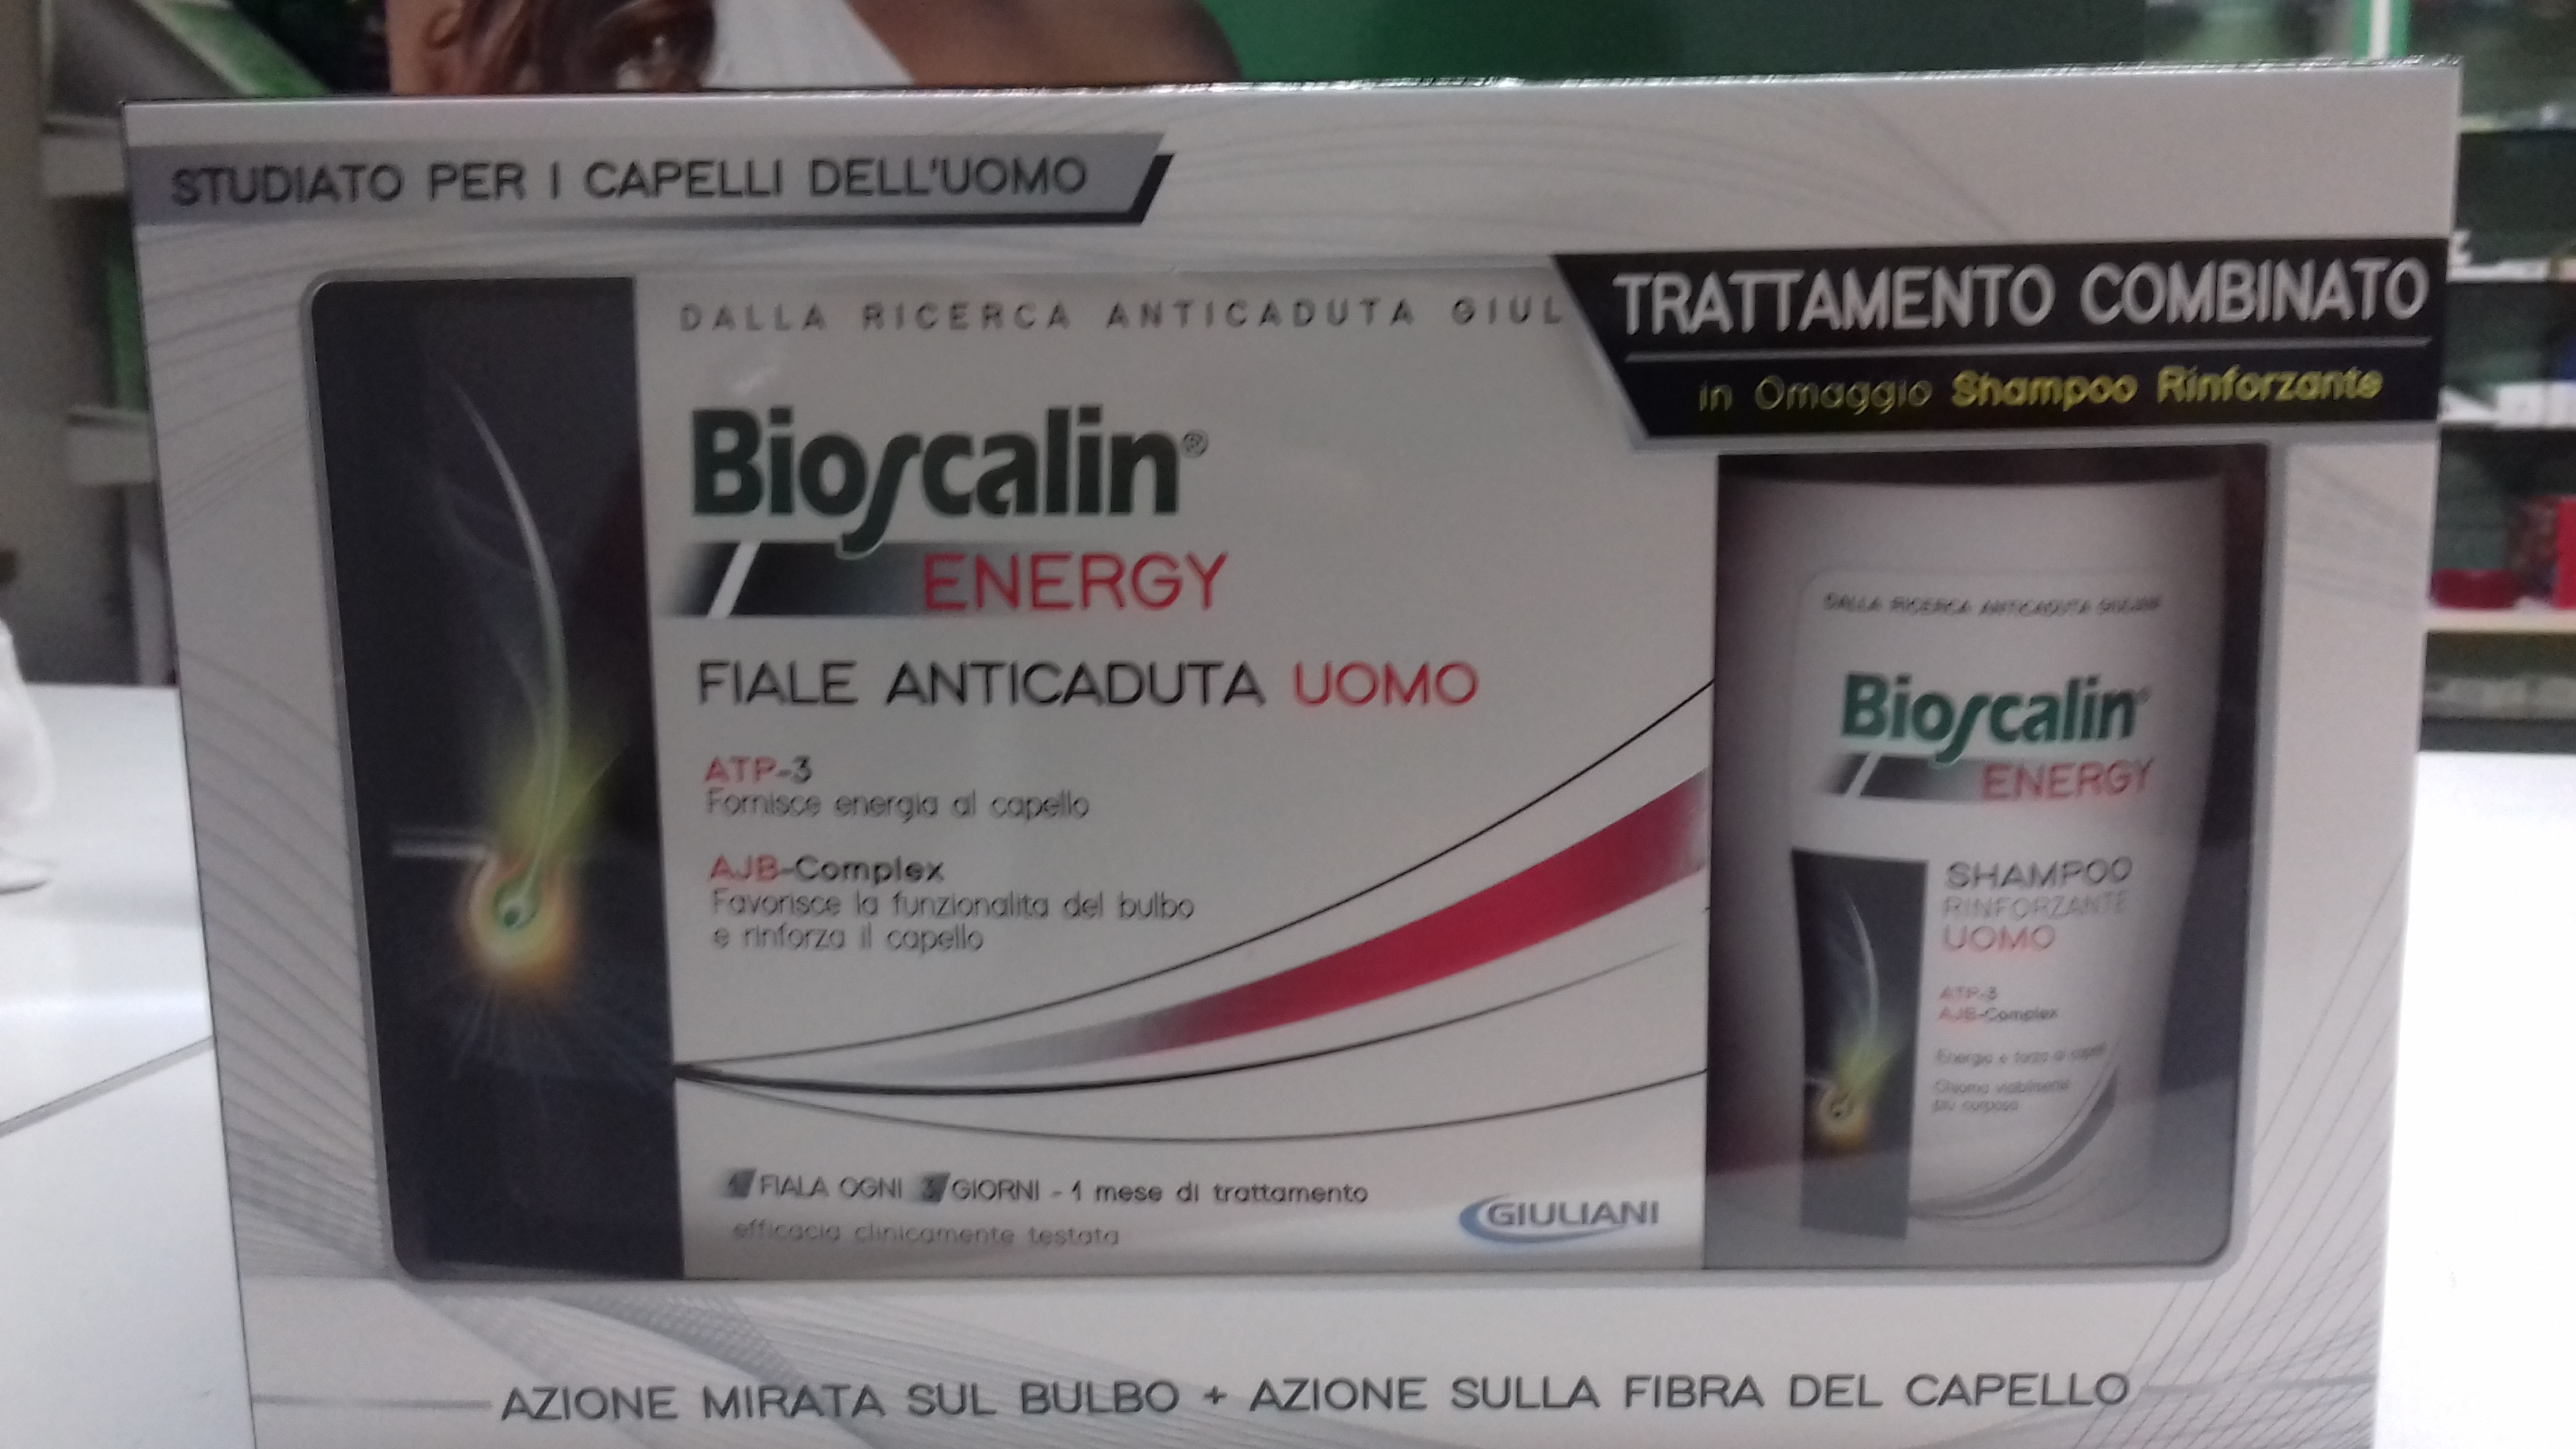 Bioscalin con Physiogenina 30 compresse+SHAMPOO OMAGGIO 100 ML